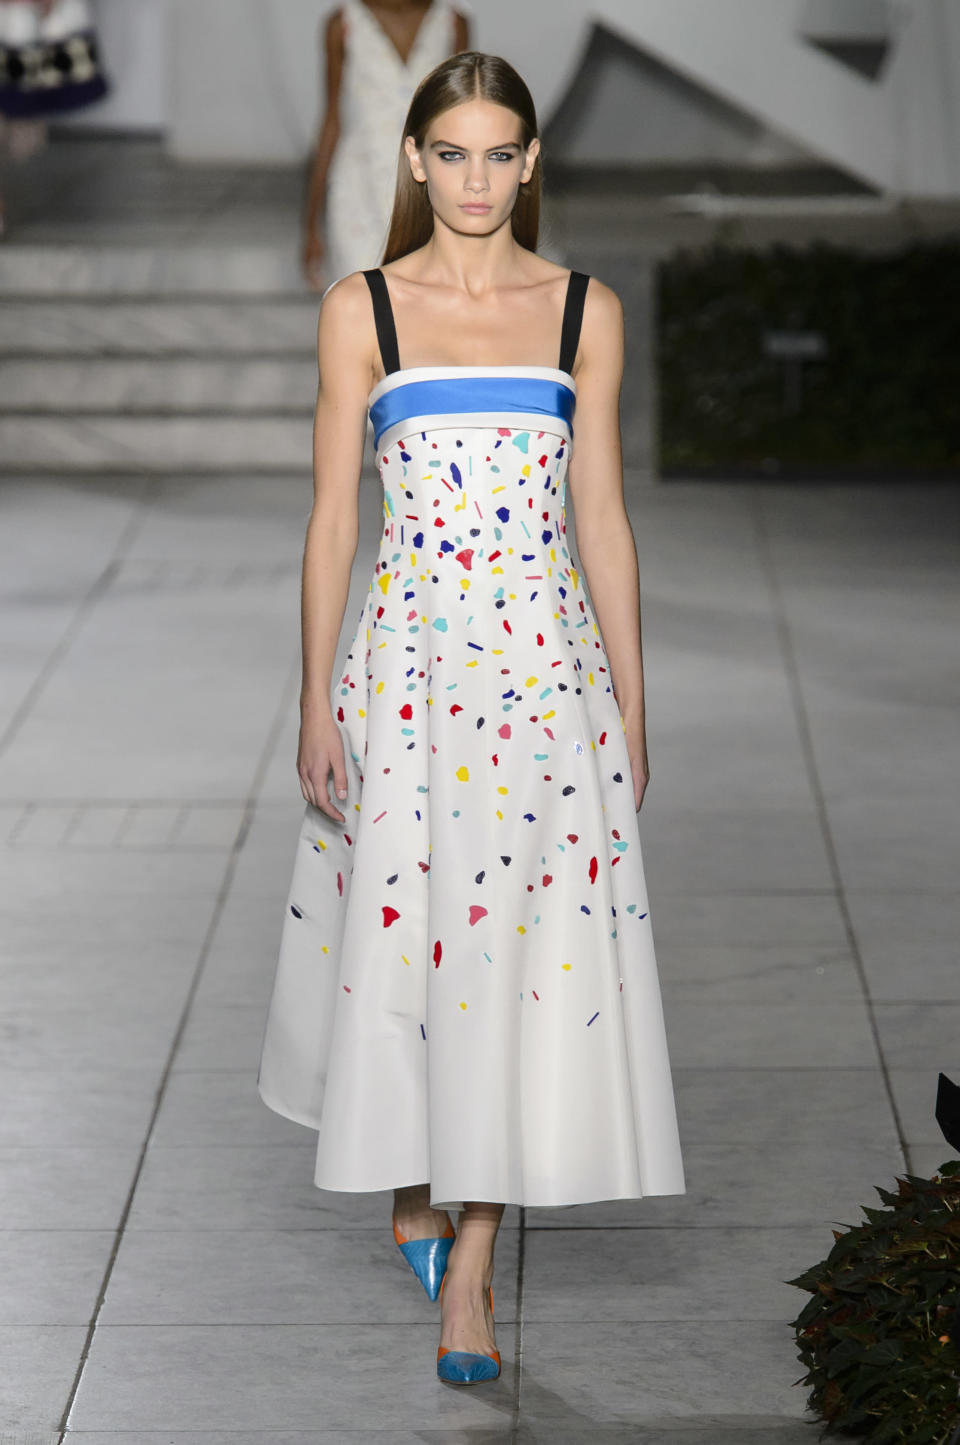 <p><i>A model wears a white, confetti-decorated dress from the SS18 Carolina Herrera dress. (Photo: IMAXtree) </i></p>